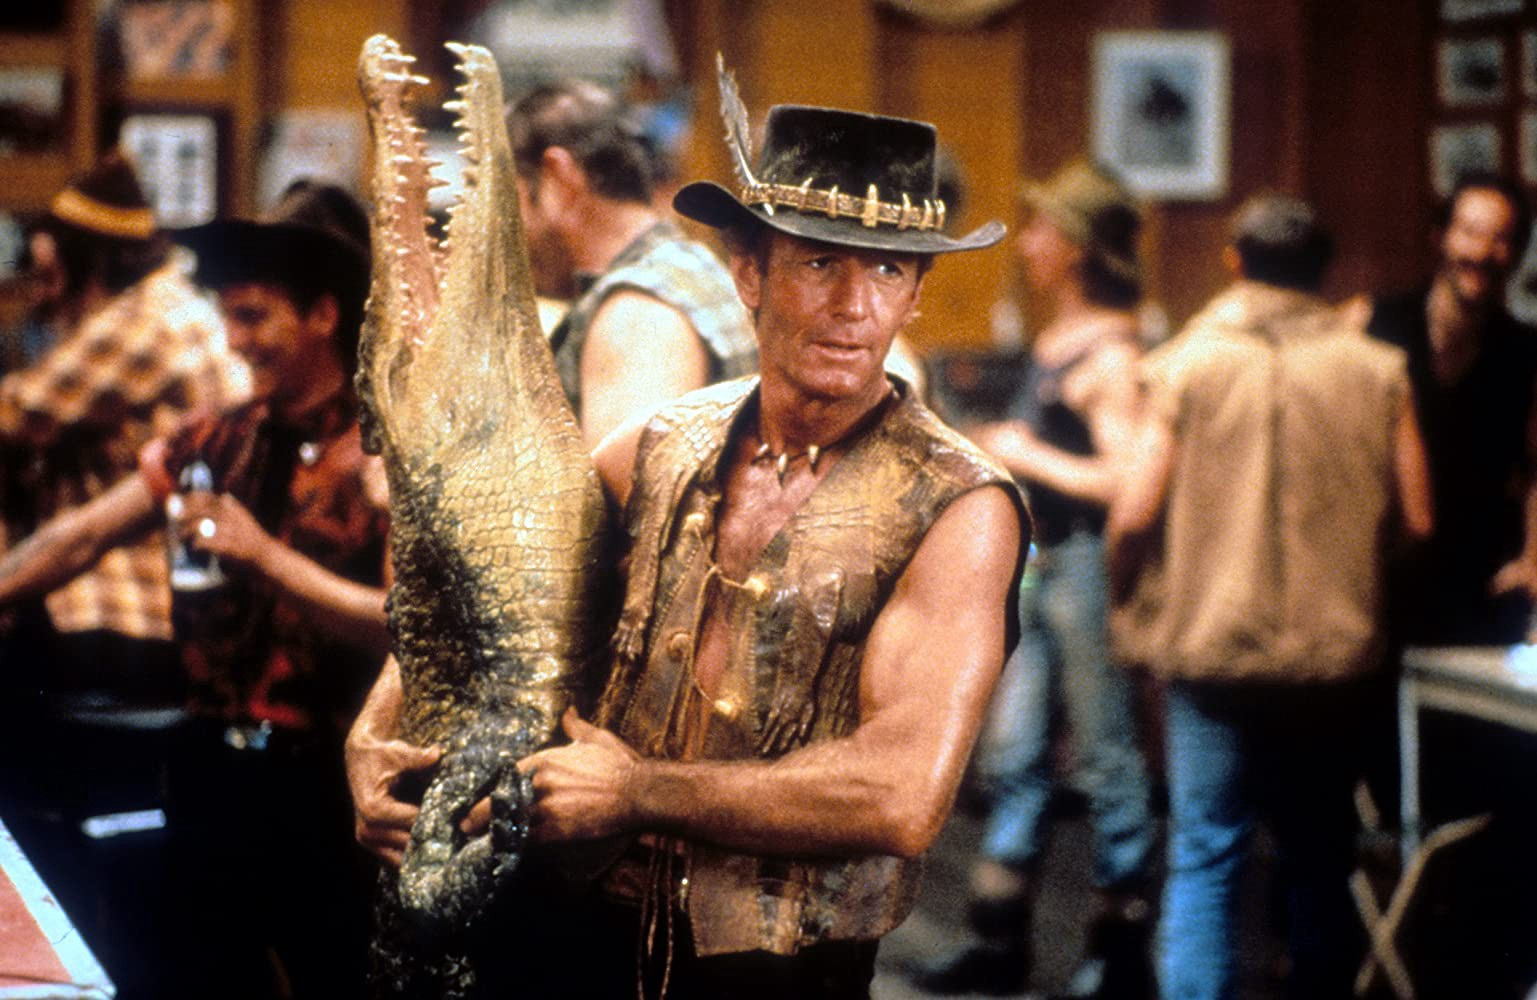 Mick, wearing an open leather vest and a feathered hat, holds a taxidermy crocodile